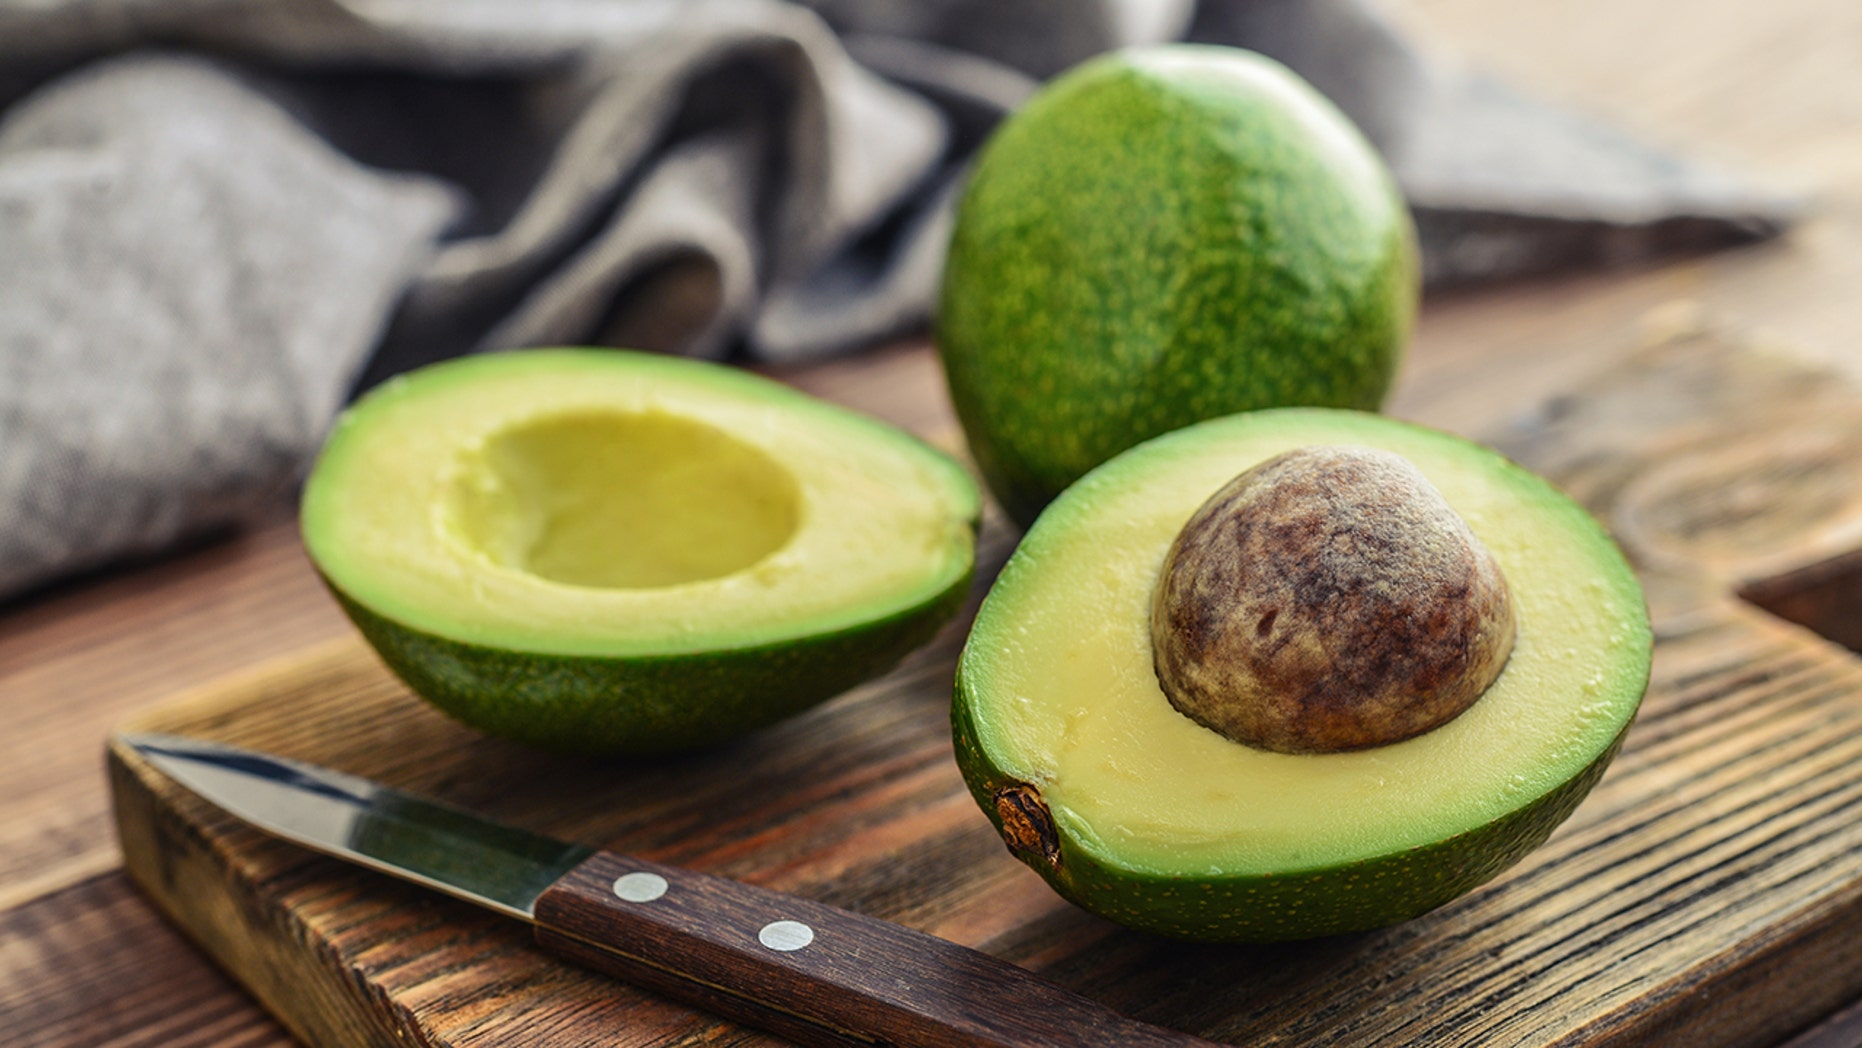 Loma Linda University is seeking candidates to participate in an avocado weight loss study.